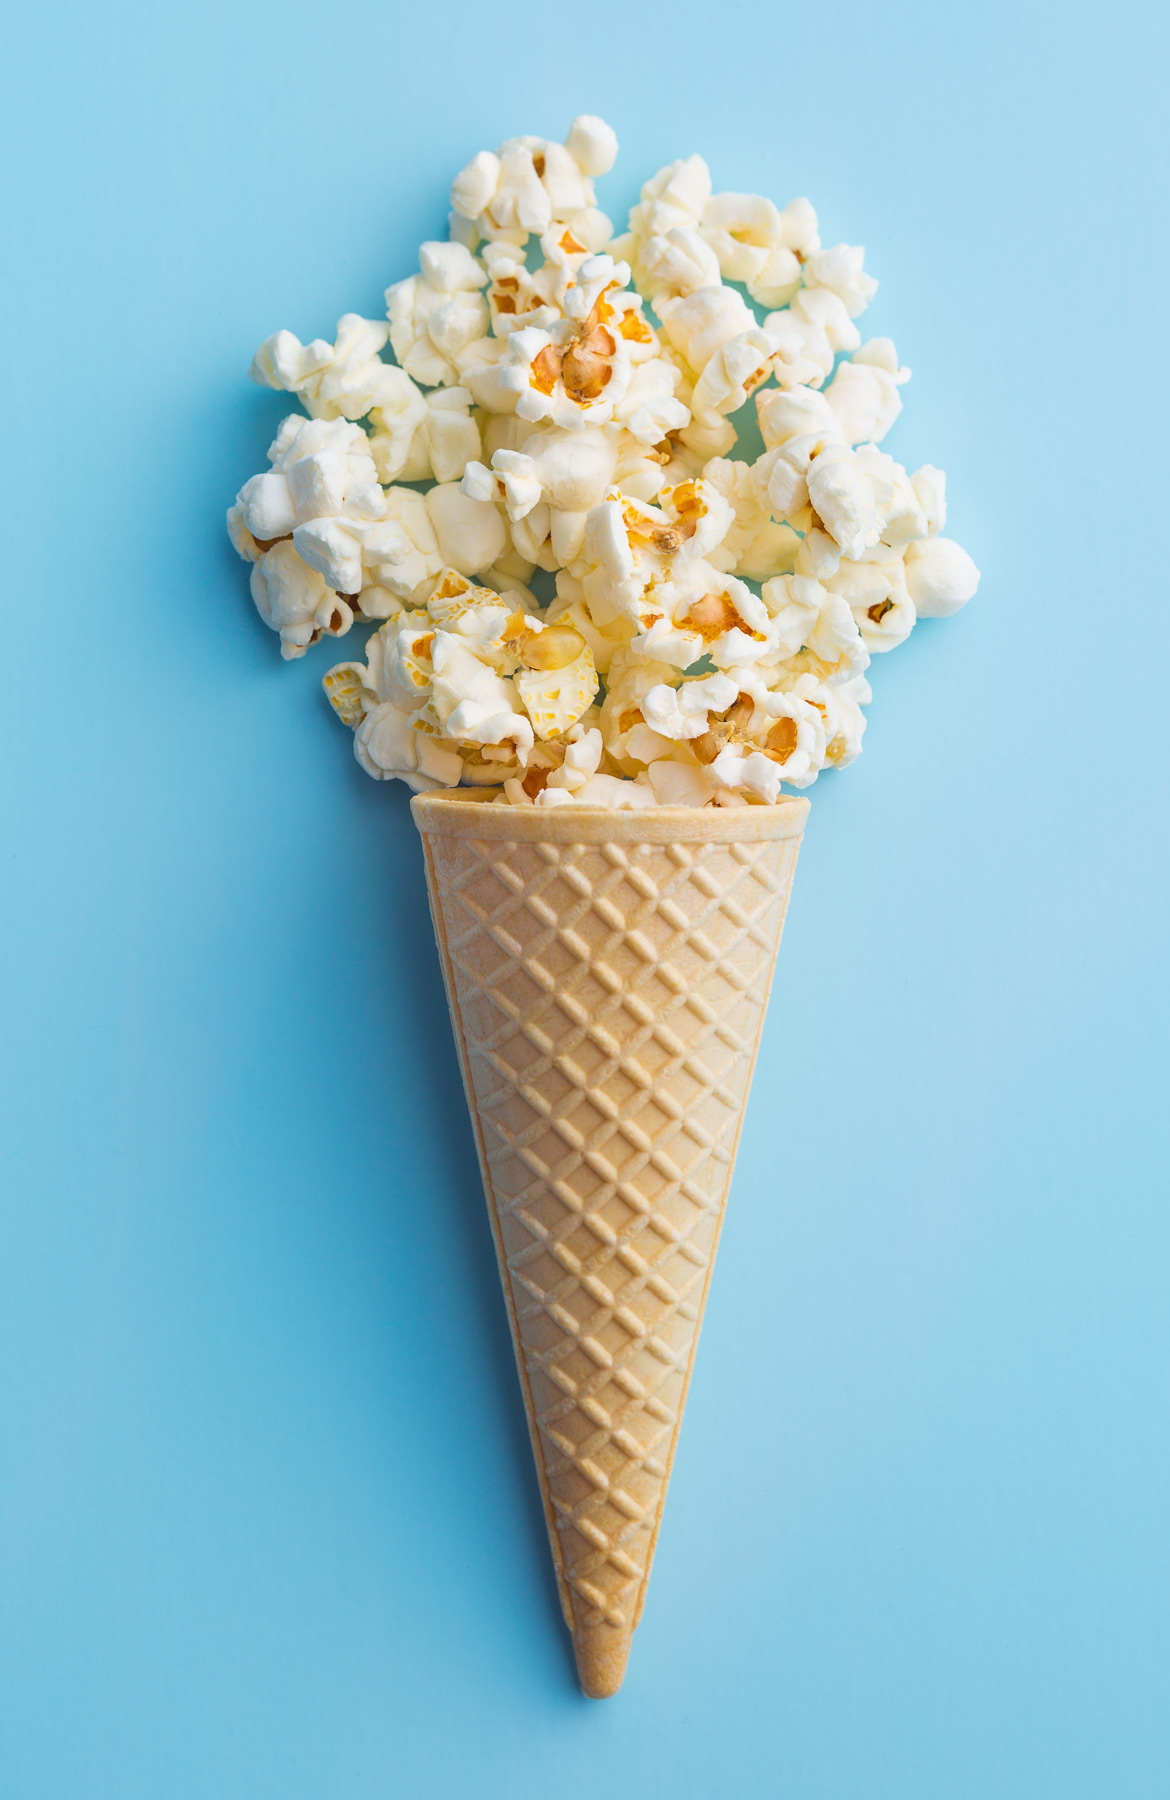 Cone icecream